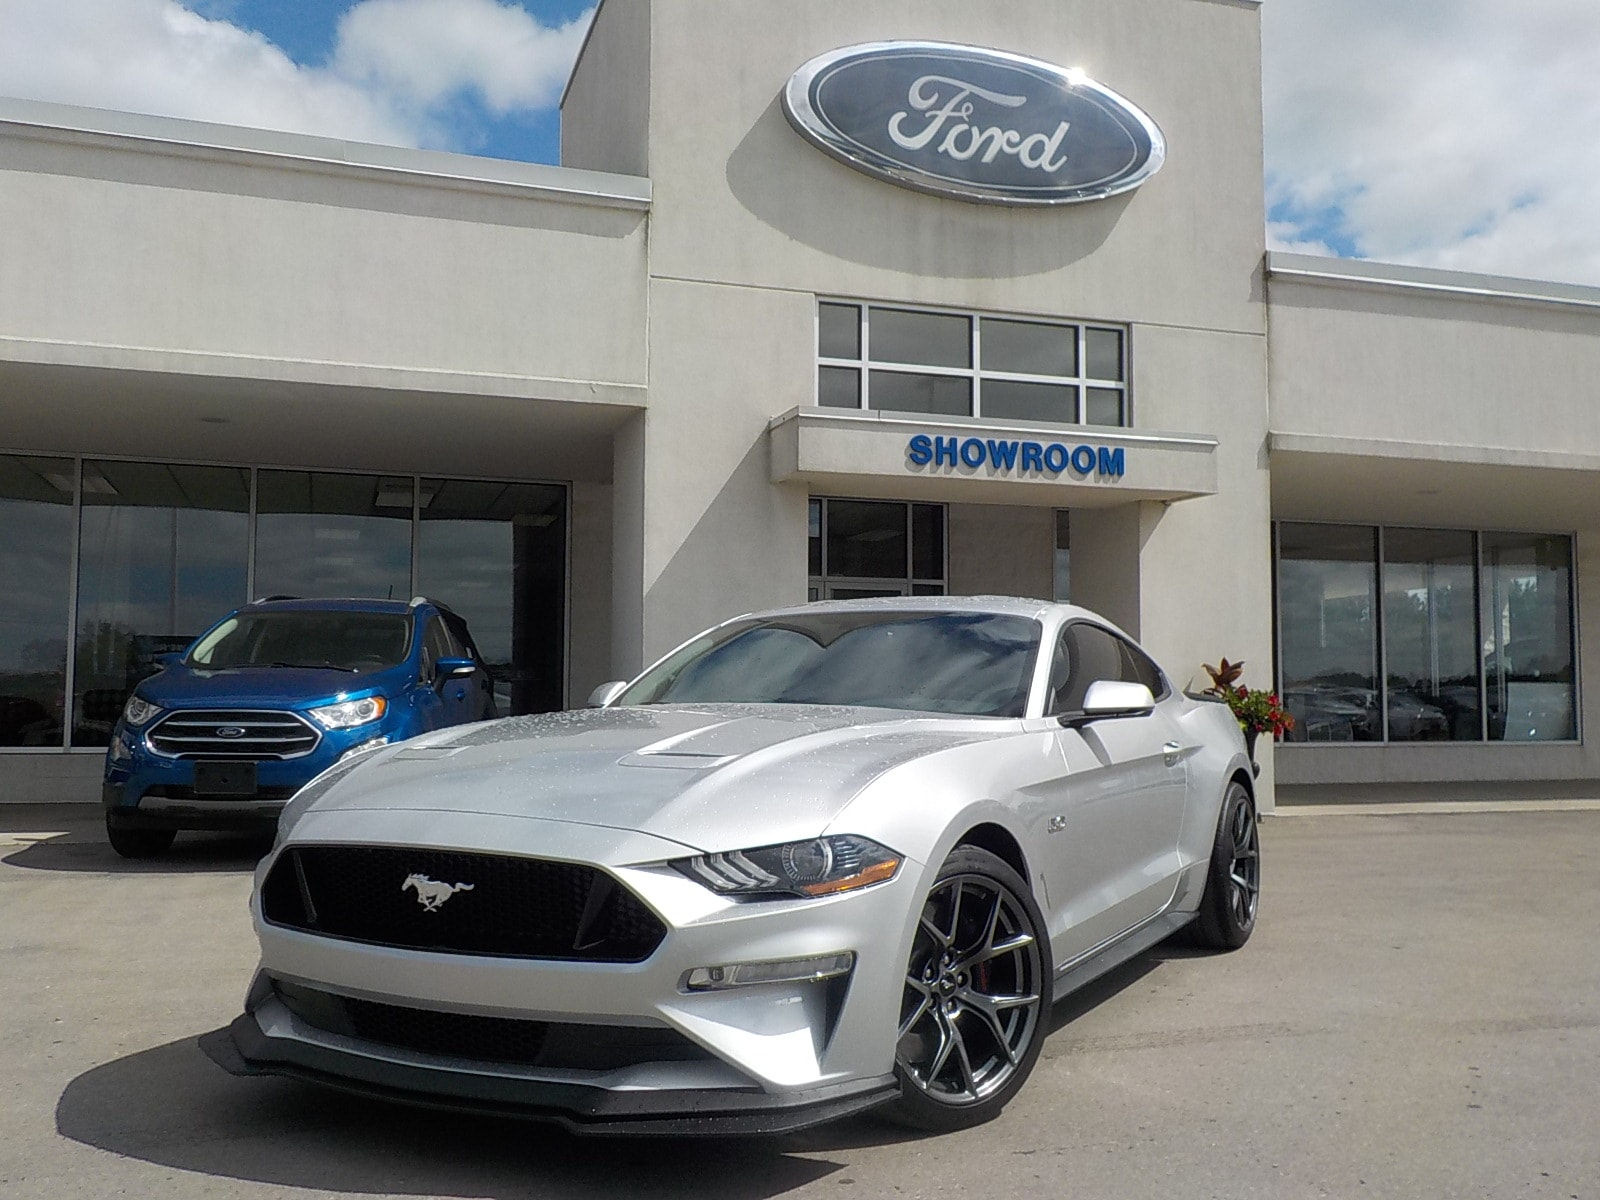 2019 Ford Mustang MUSTANG Coupe